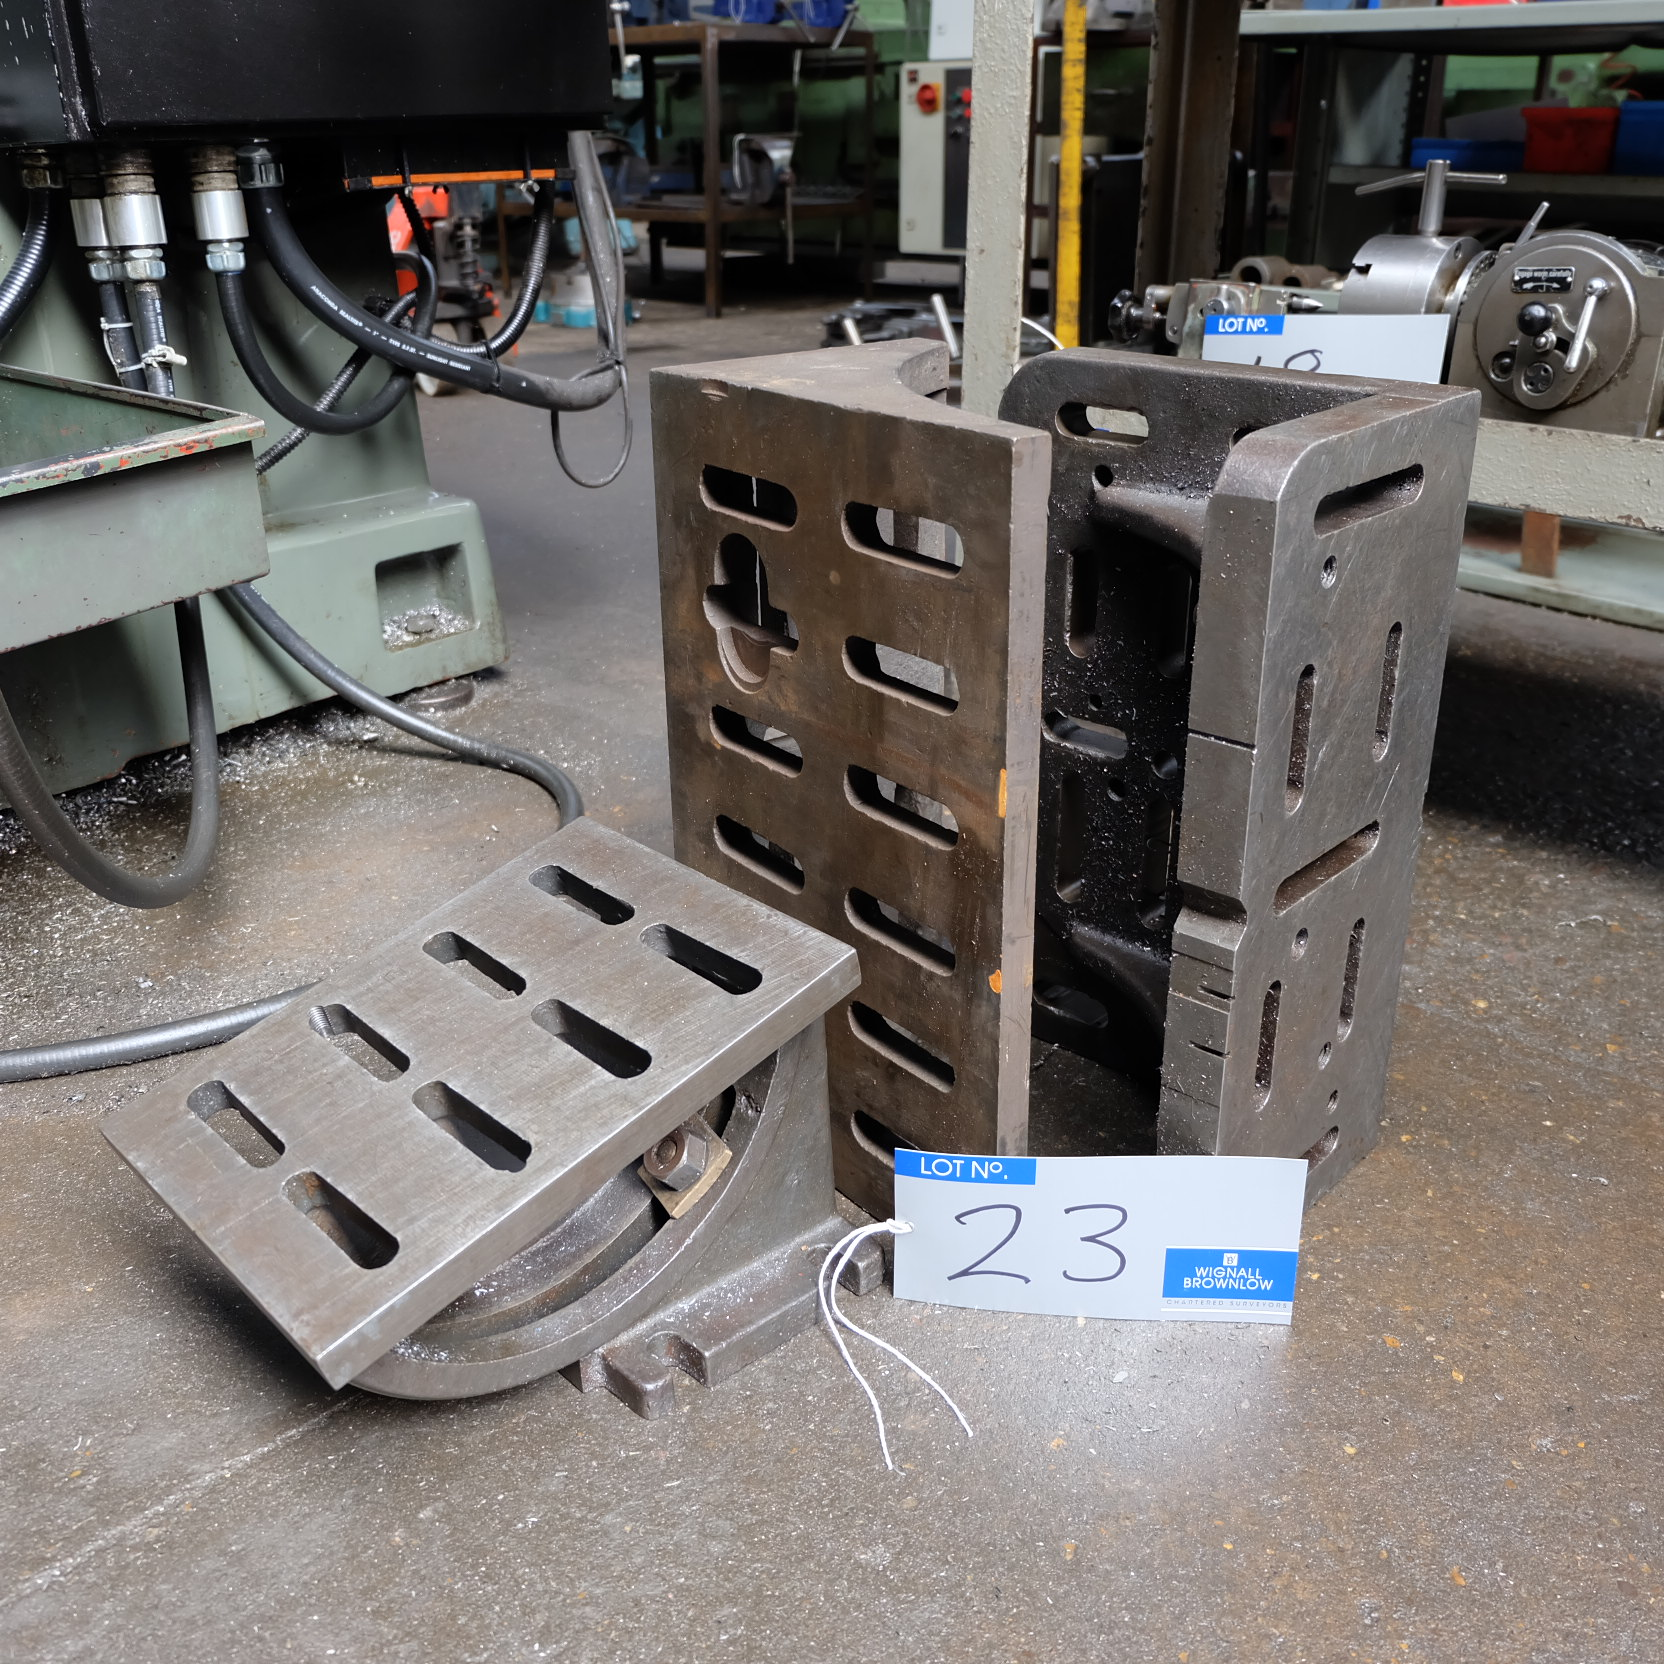 Lot 23 - 2 Cast Iron Angle Plates: 18in x 8in x 11in, 18in x 8in x 12in with Swivel Angle Plate, 12in x 9in x